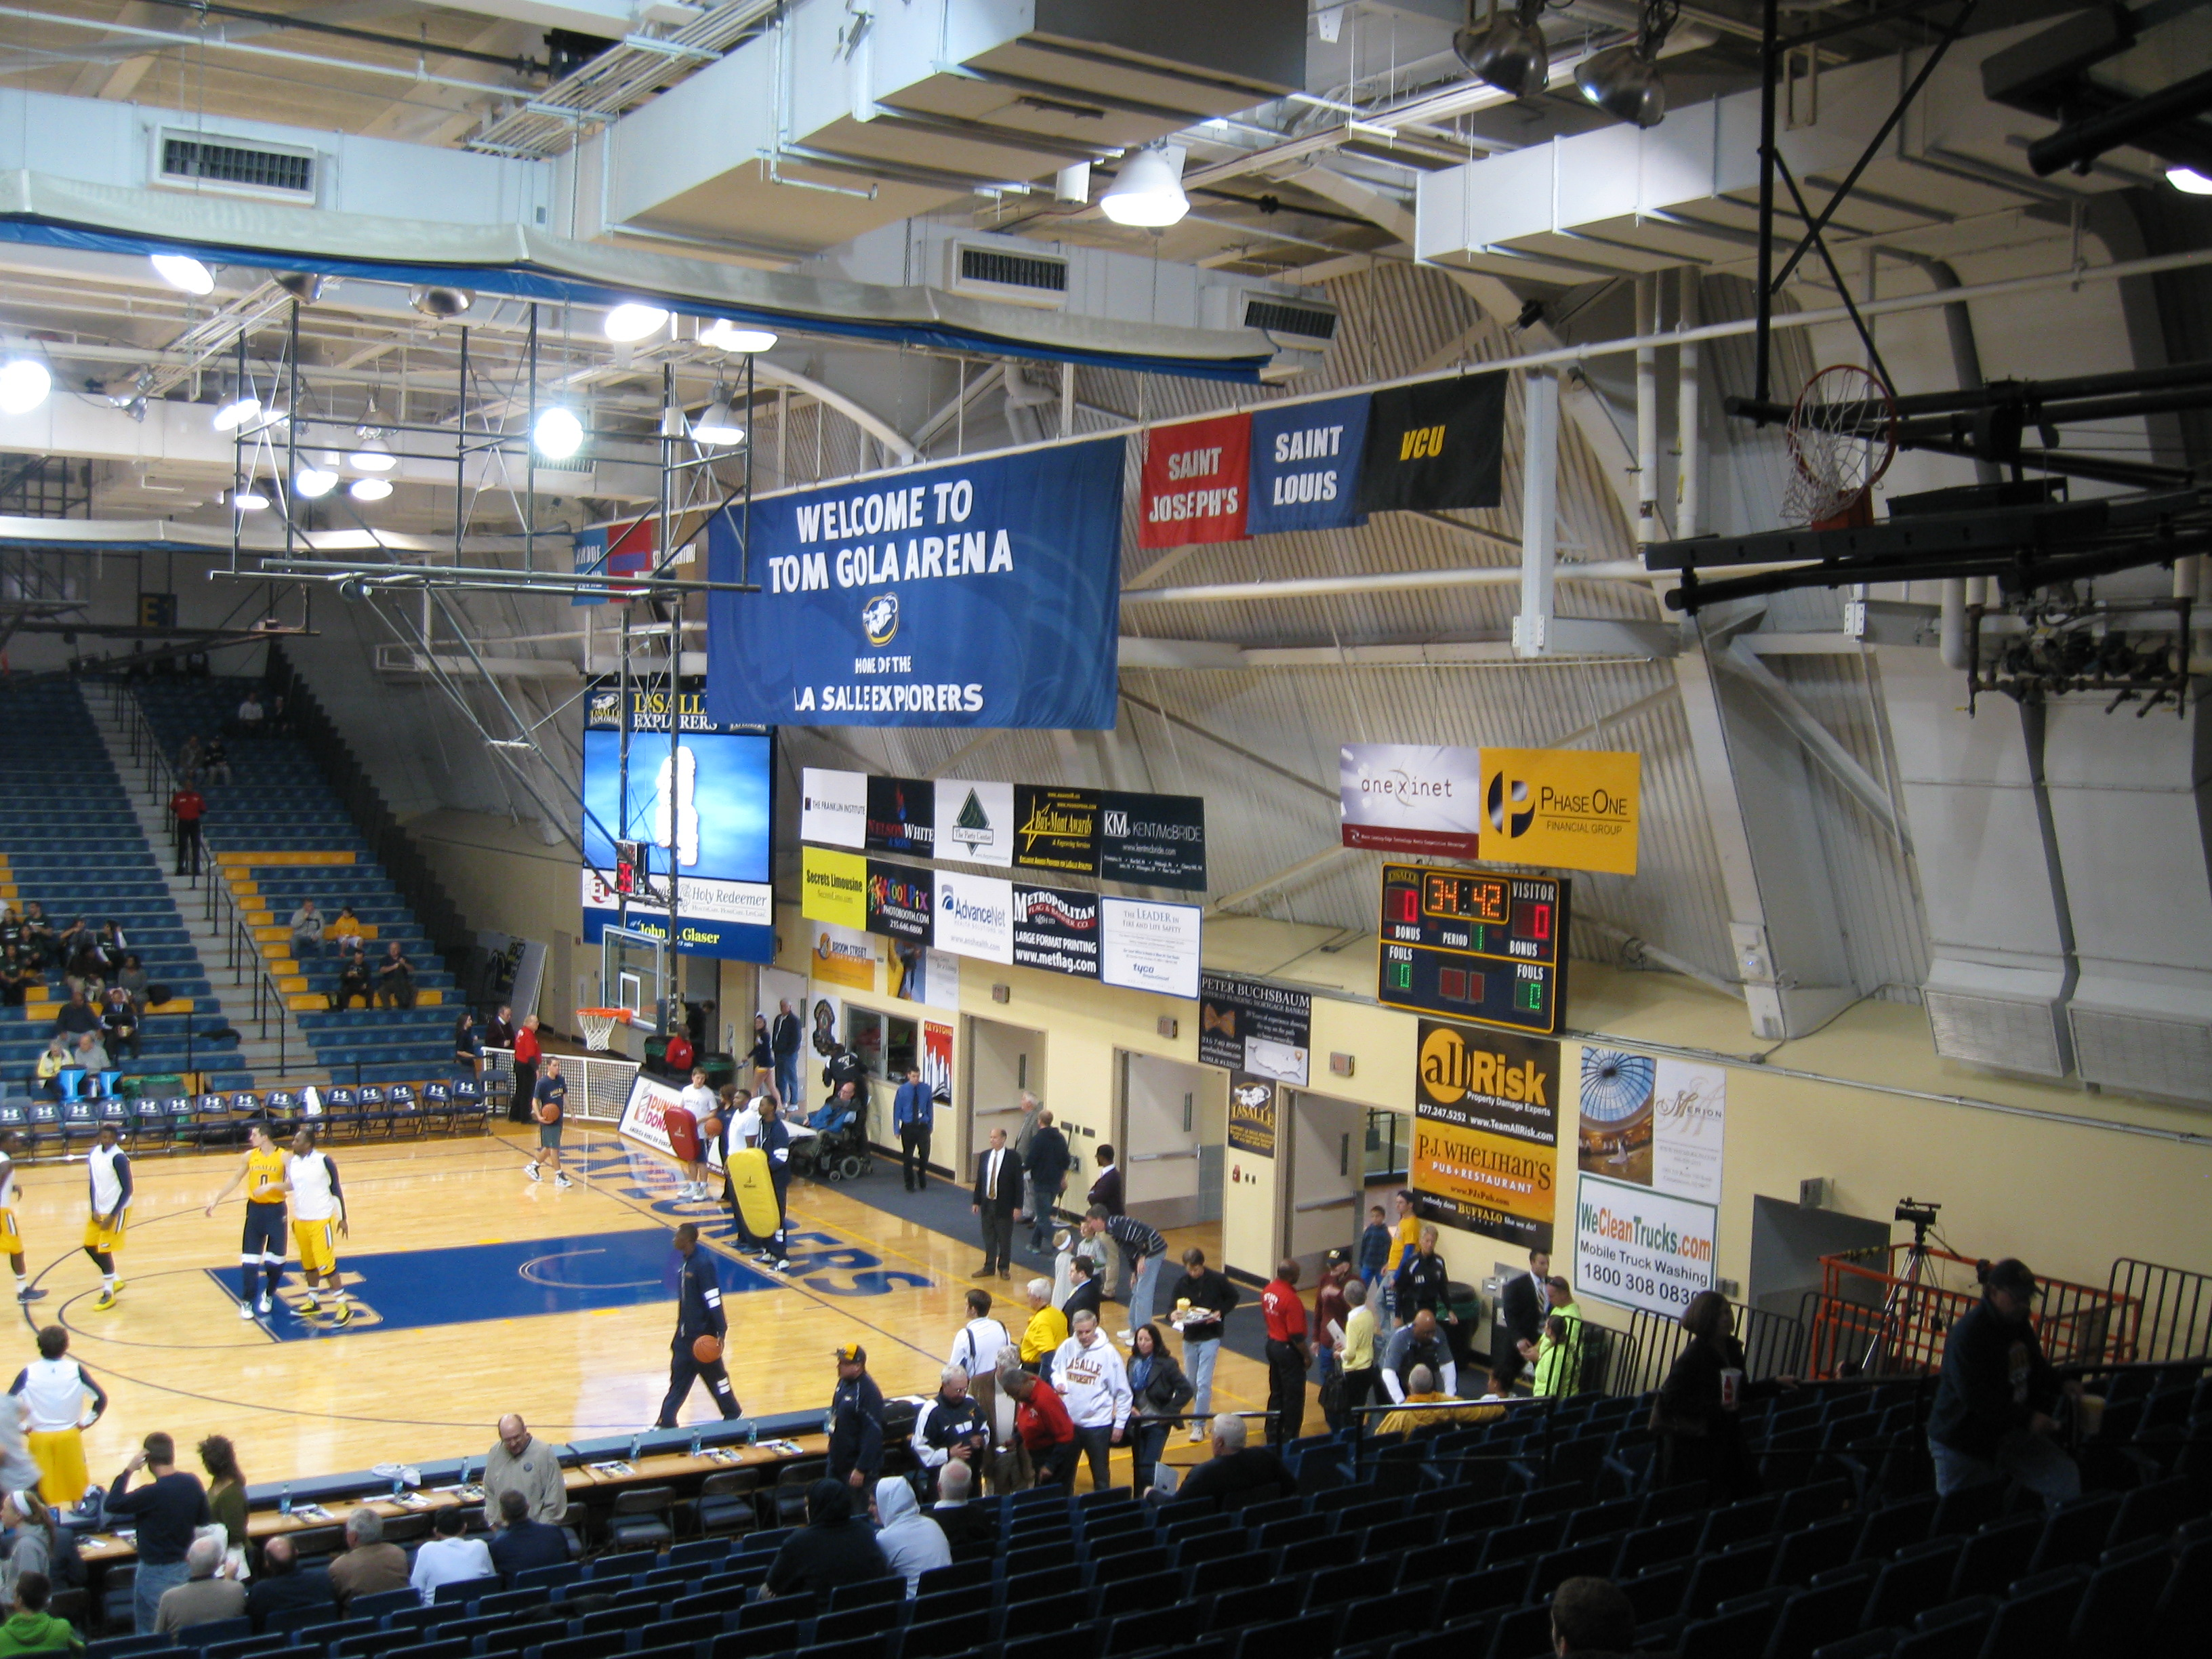 139 Tom Gola Arena Stadium and Arena Visits